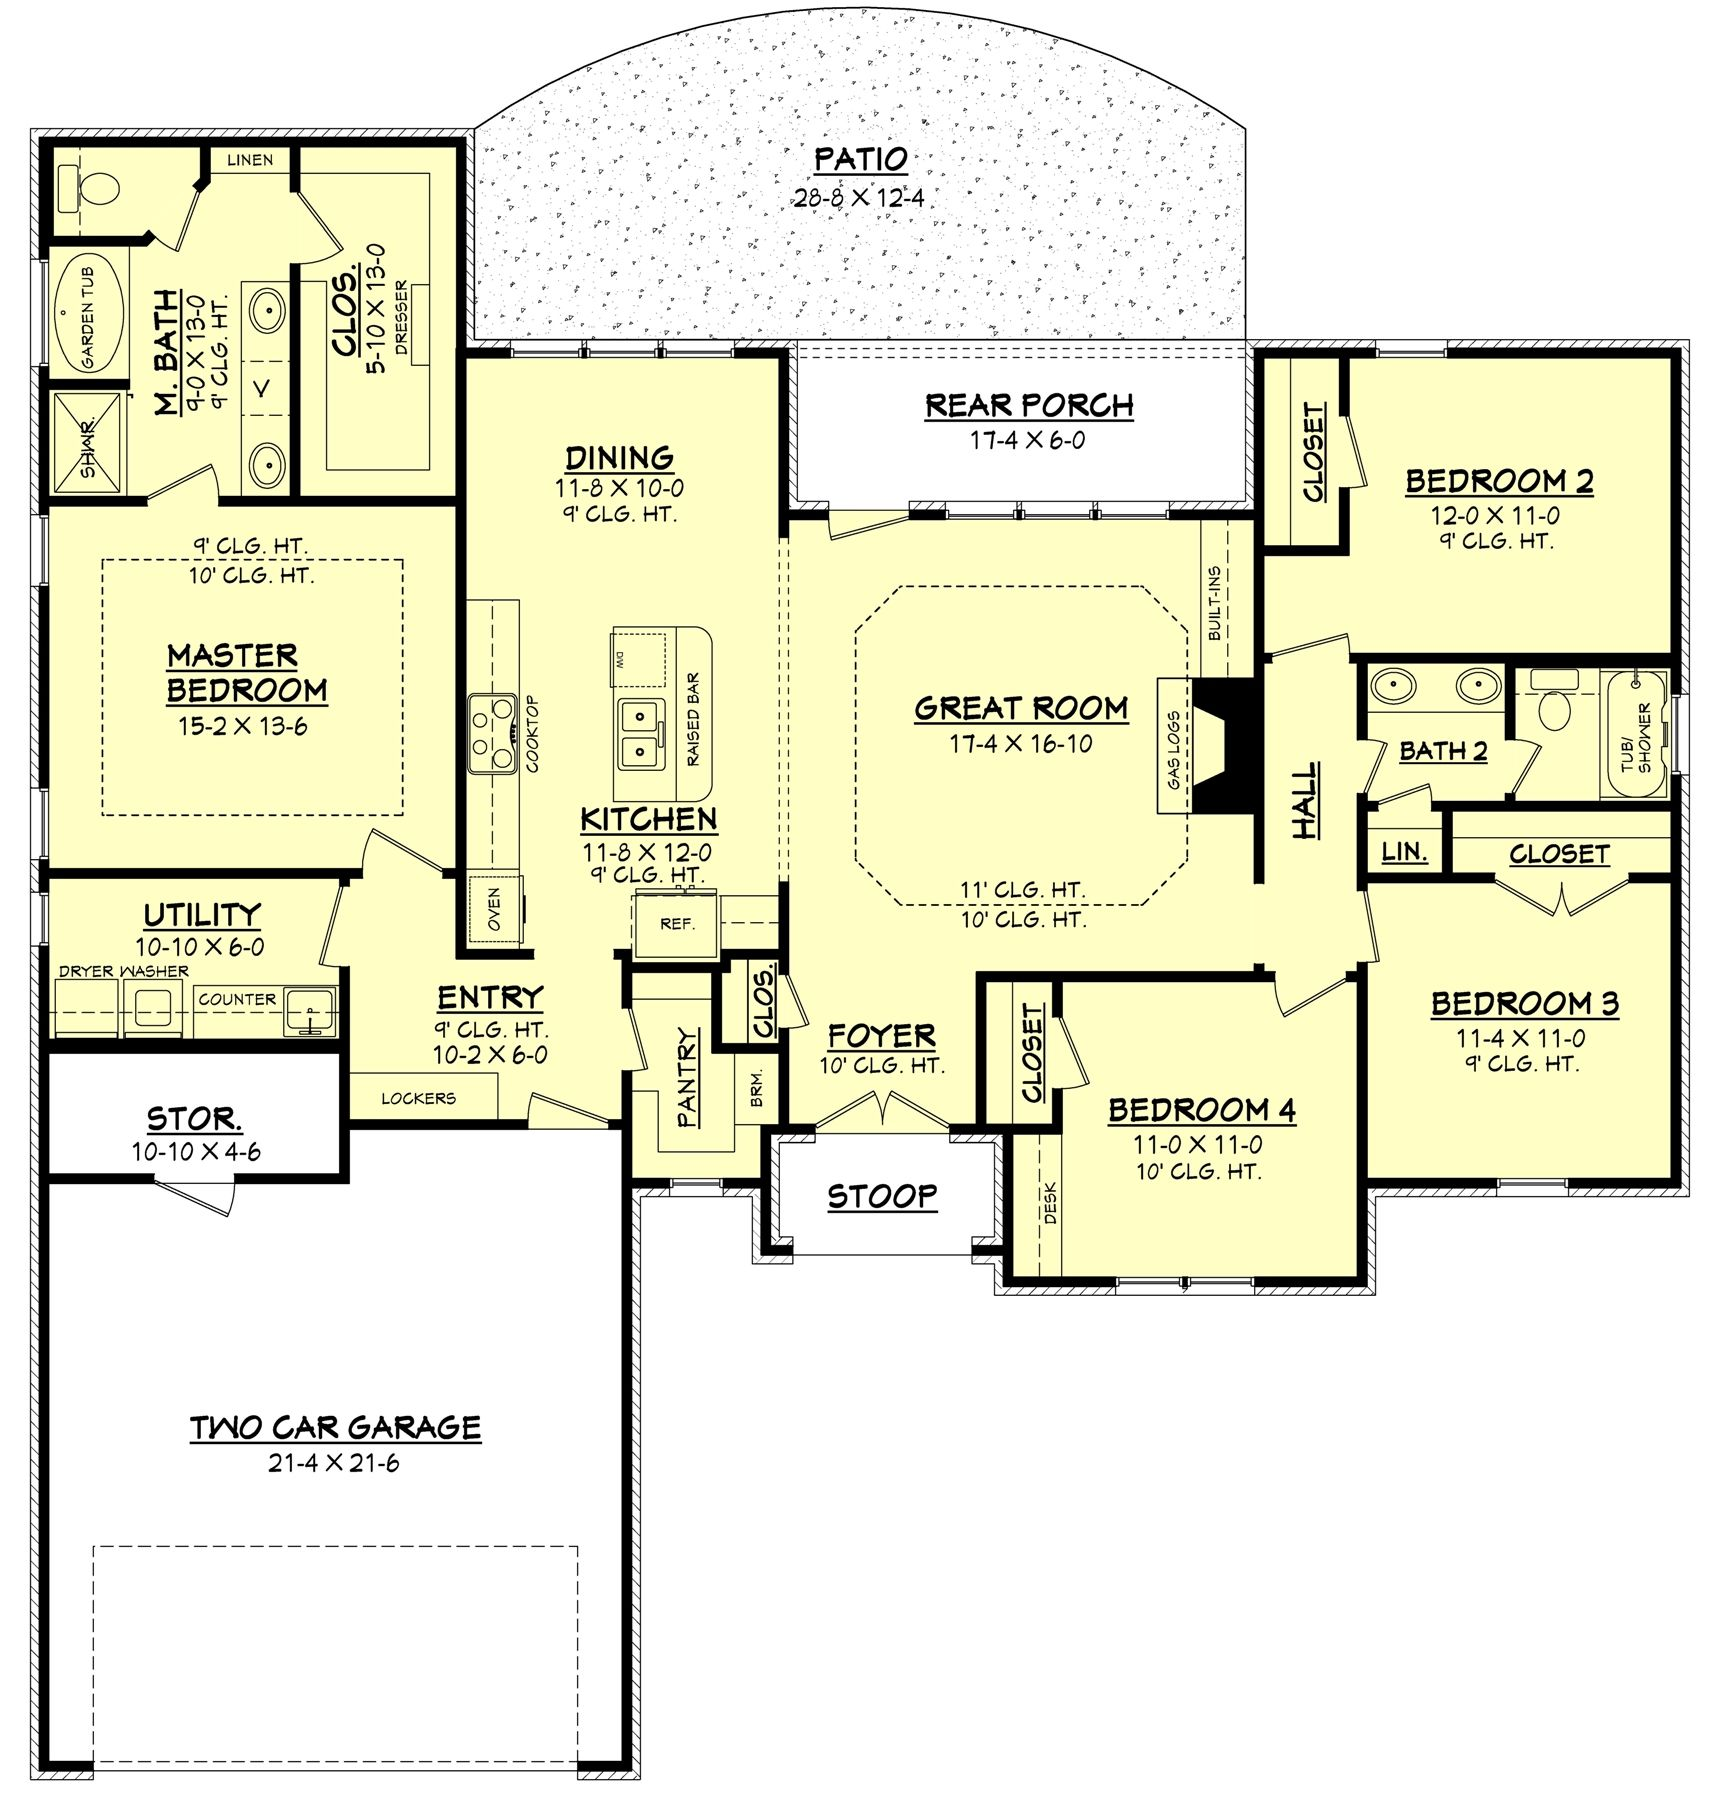 Ranch Style House Plan   4 Beds 2 Baths 1875 Sq/Ft Plan #430